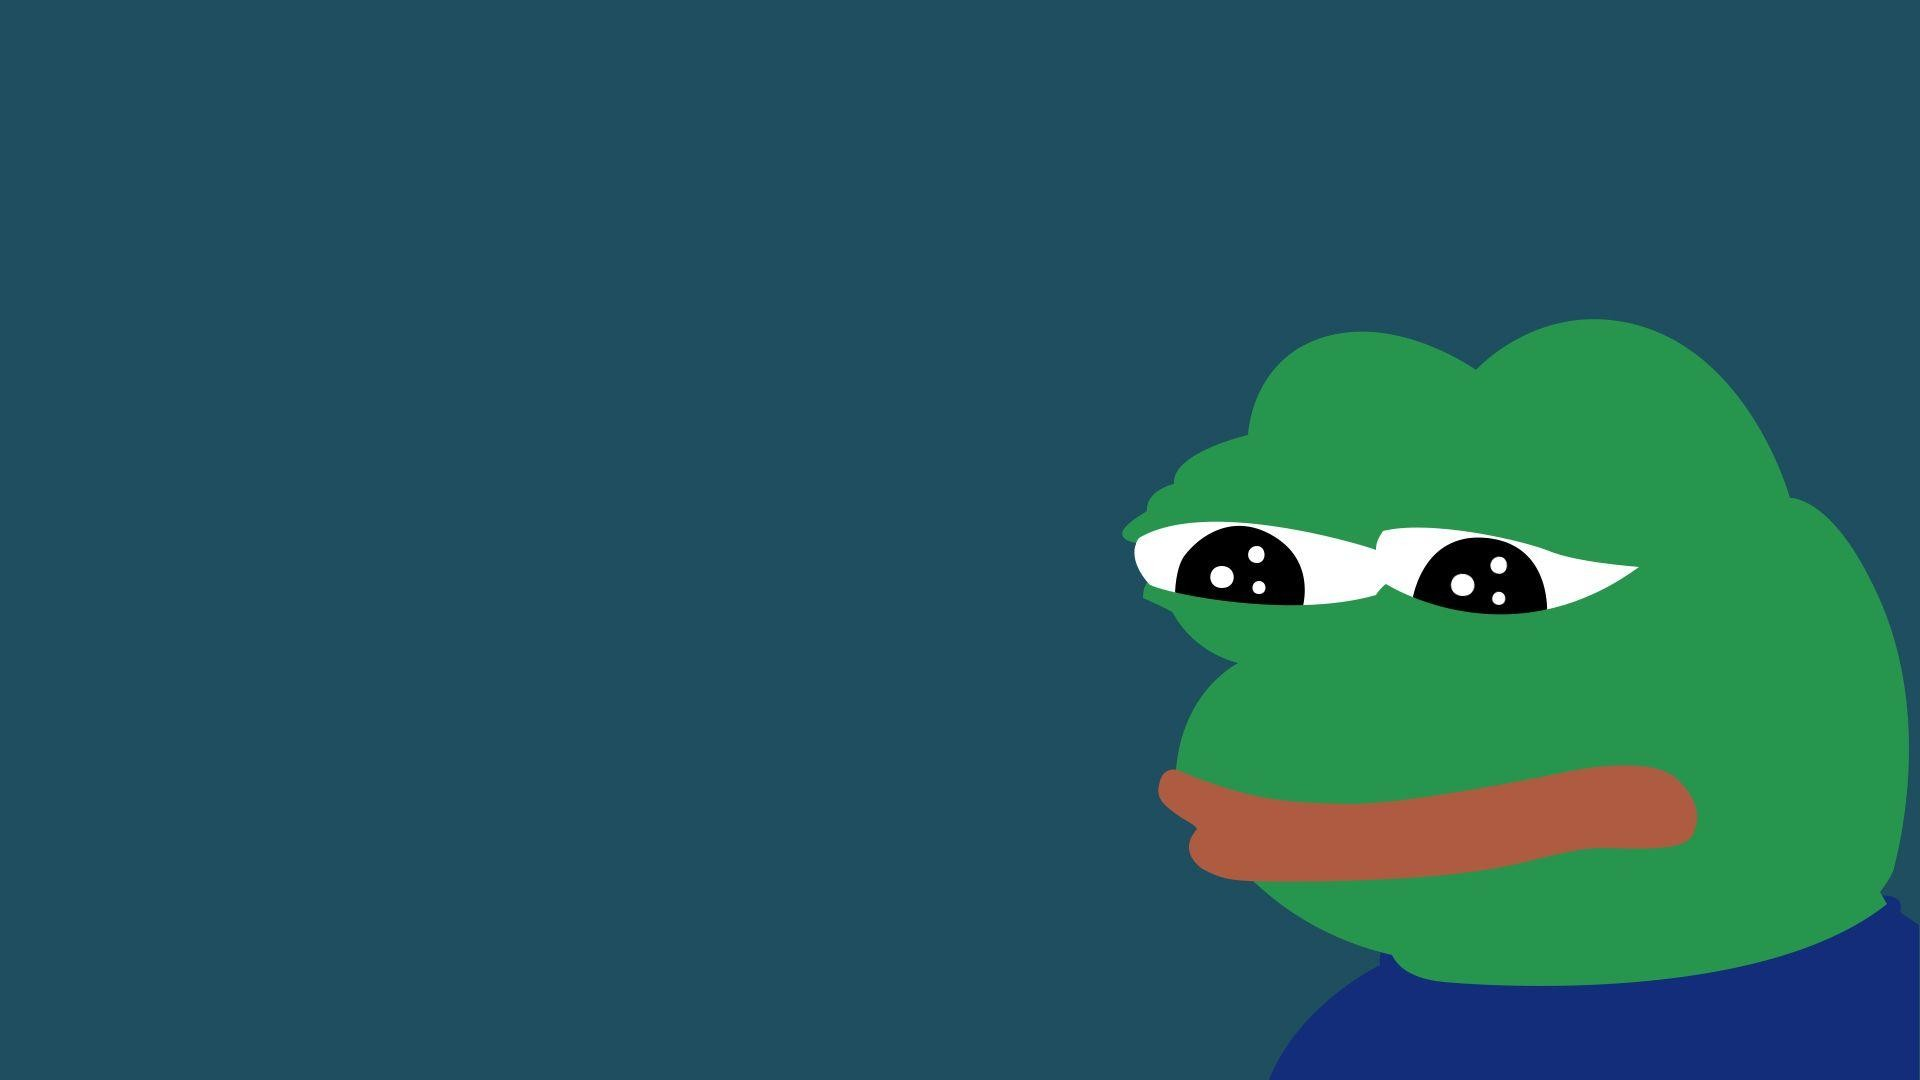 pepe the frog wallpapers